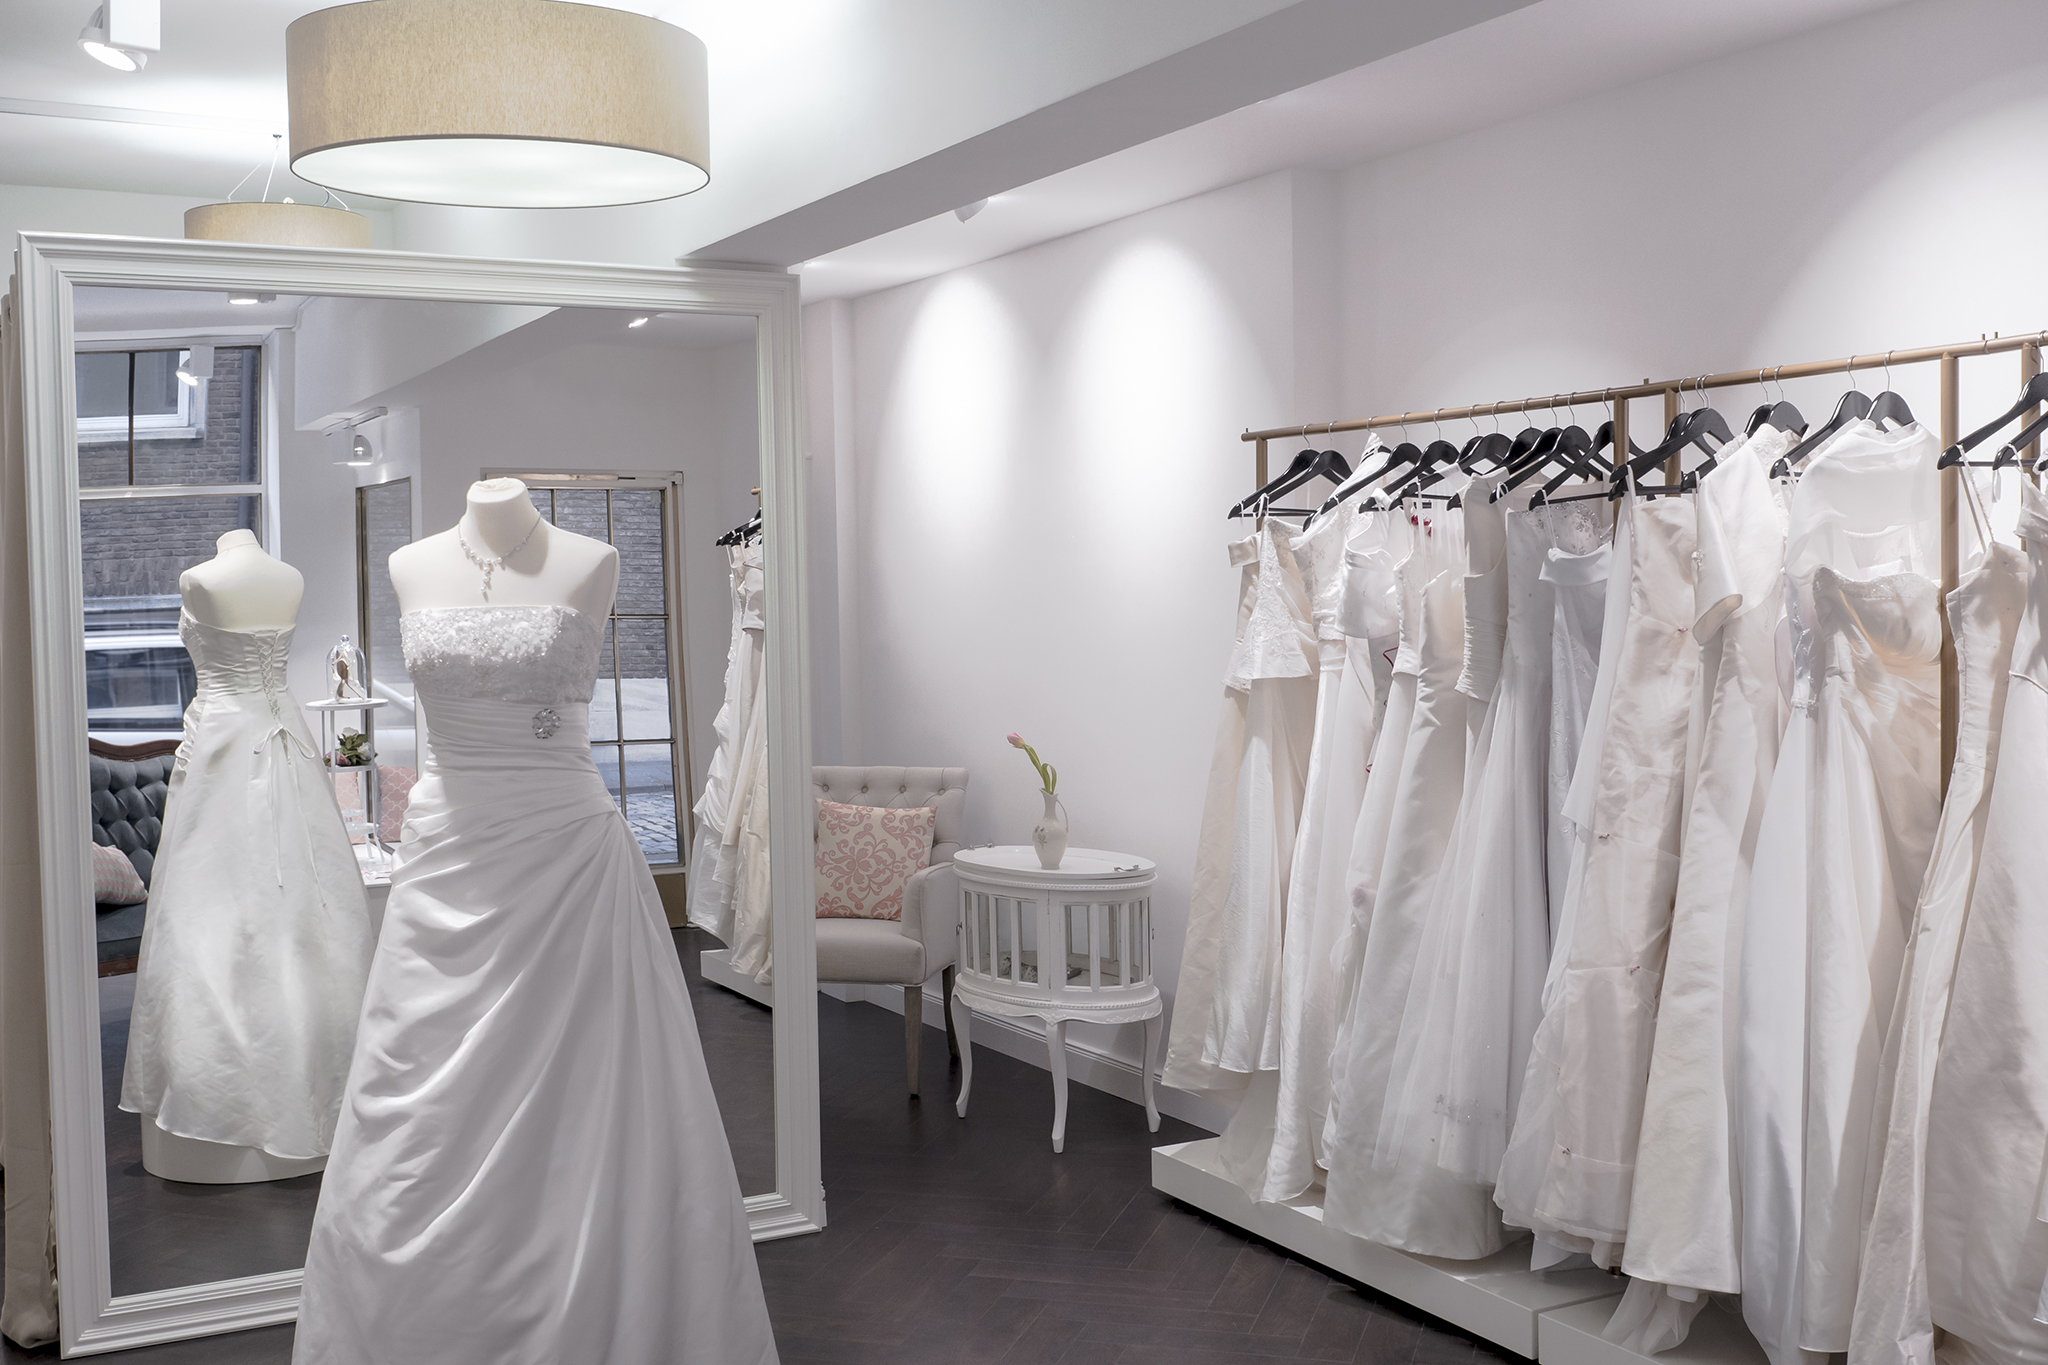 Best bridal shops in nyc including lovely bride and kleinfeld for Best wedding dress shops